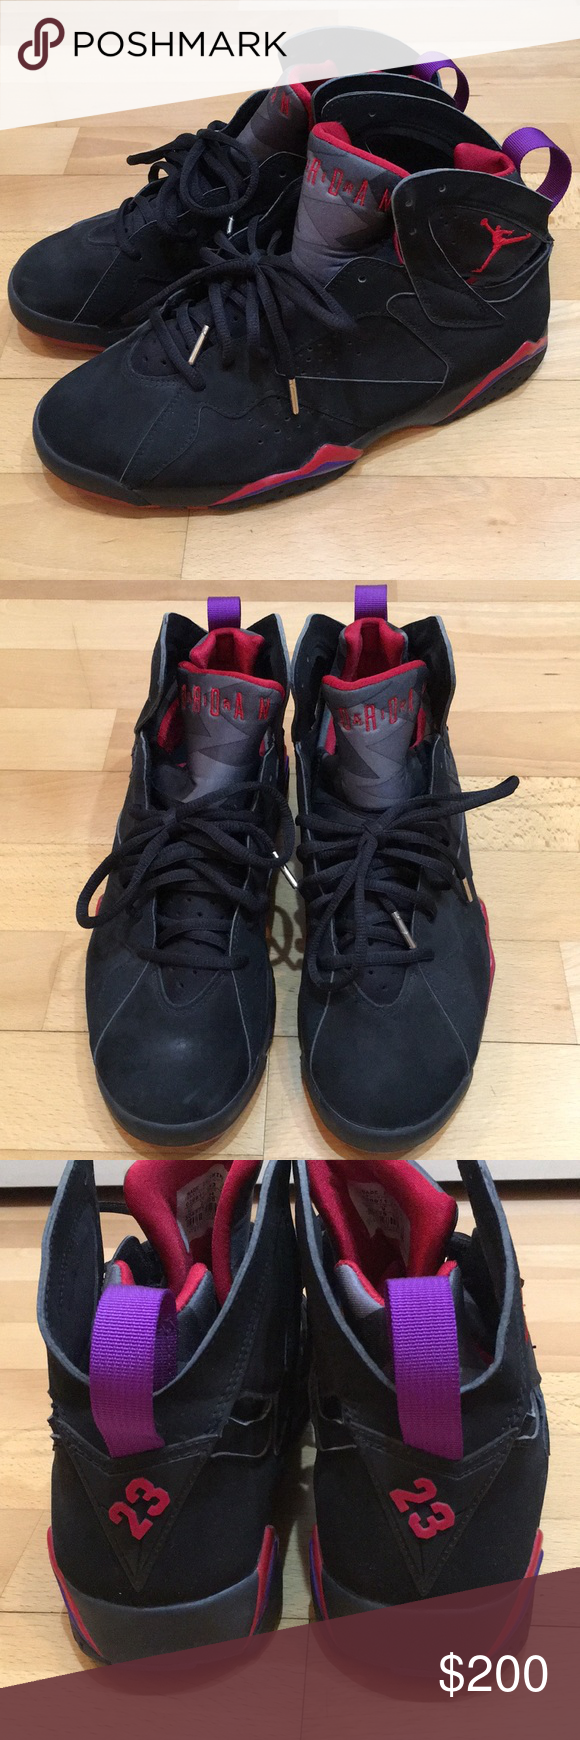 fb7461d59c63 Air Jordan 7 Raptors 2002 Gently used. No trades. Comes with replacement  box.